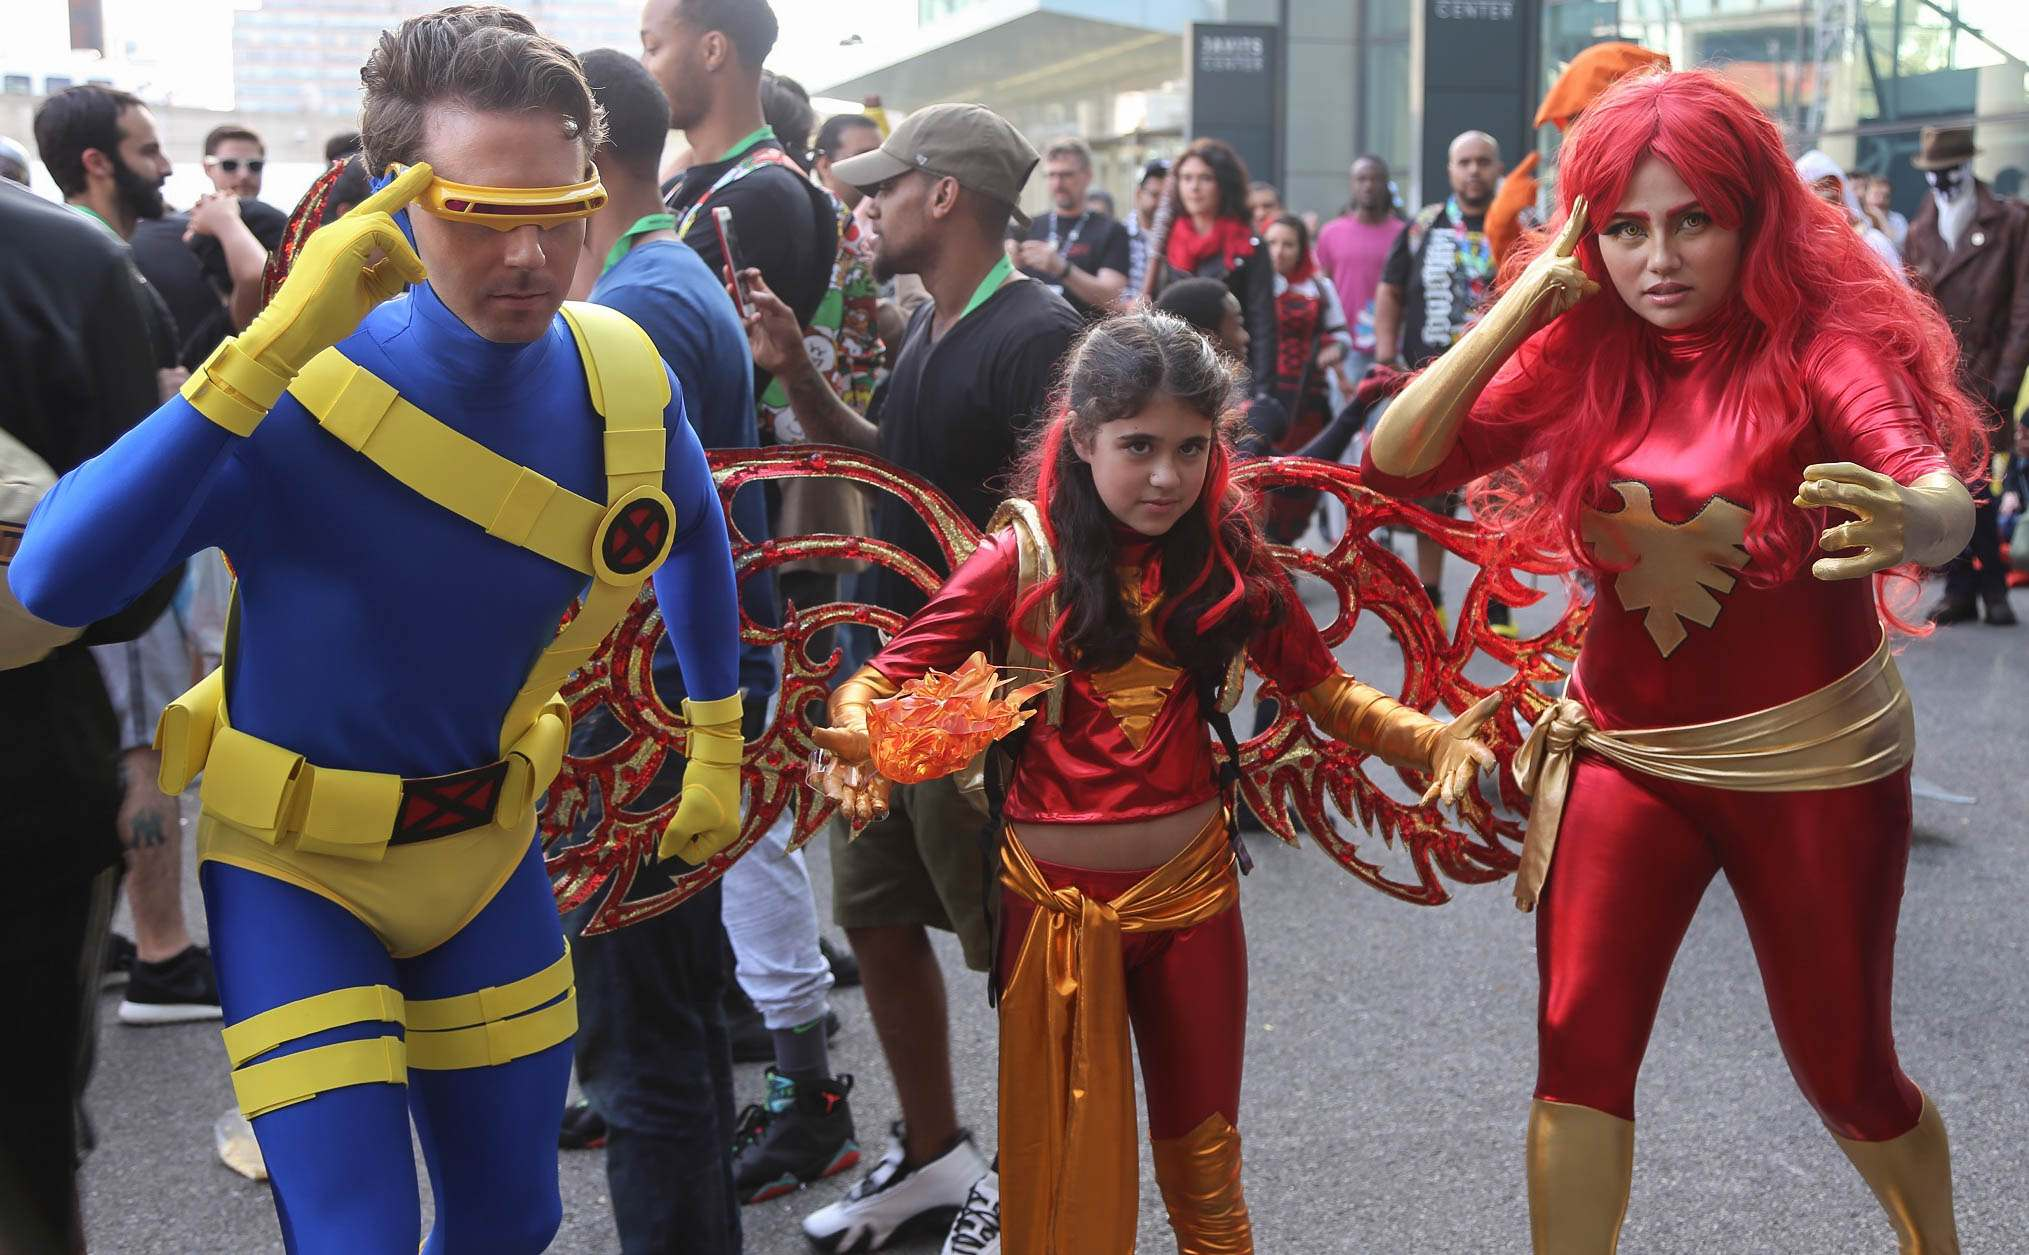 nycc10 Best Costumes from Comic Con in New York 2017